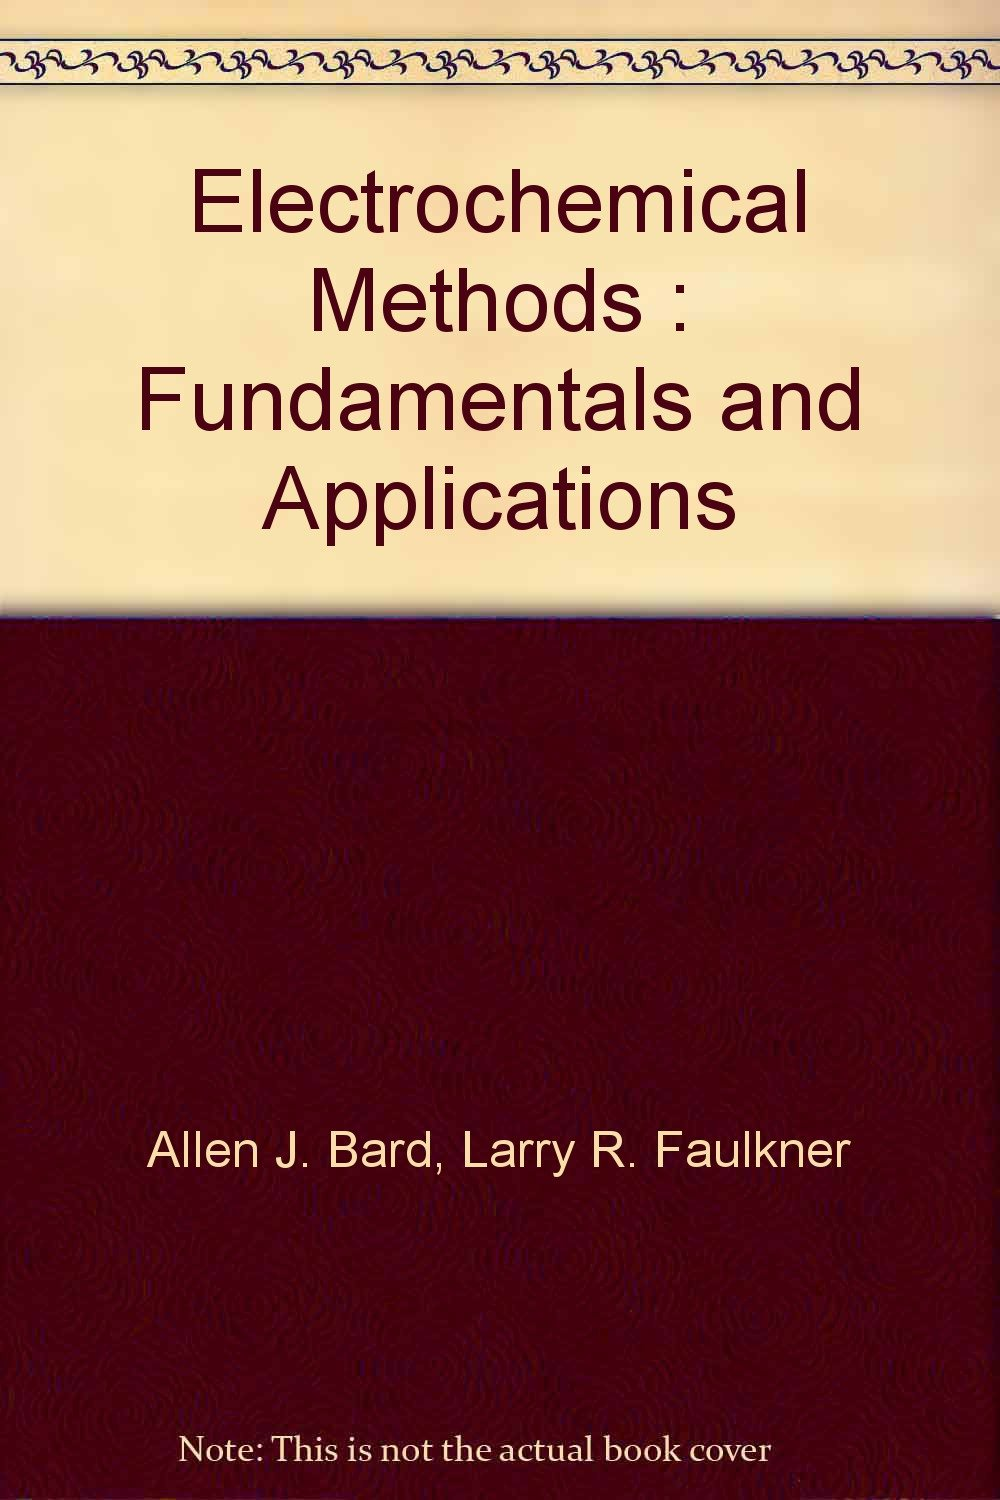 Electrochemical Methods : Fundamentals and Applications: Larry R. Faulkner  Allen J. Bard: Amazon.com: Books